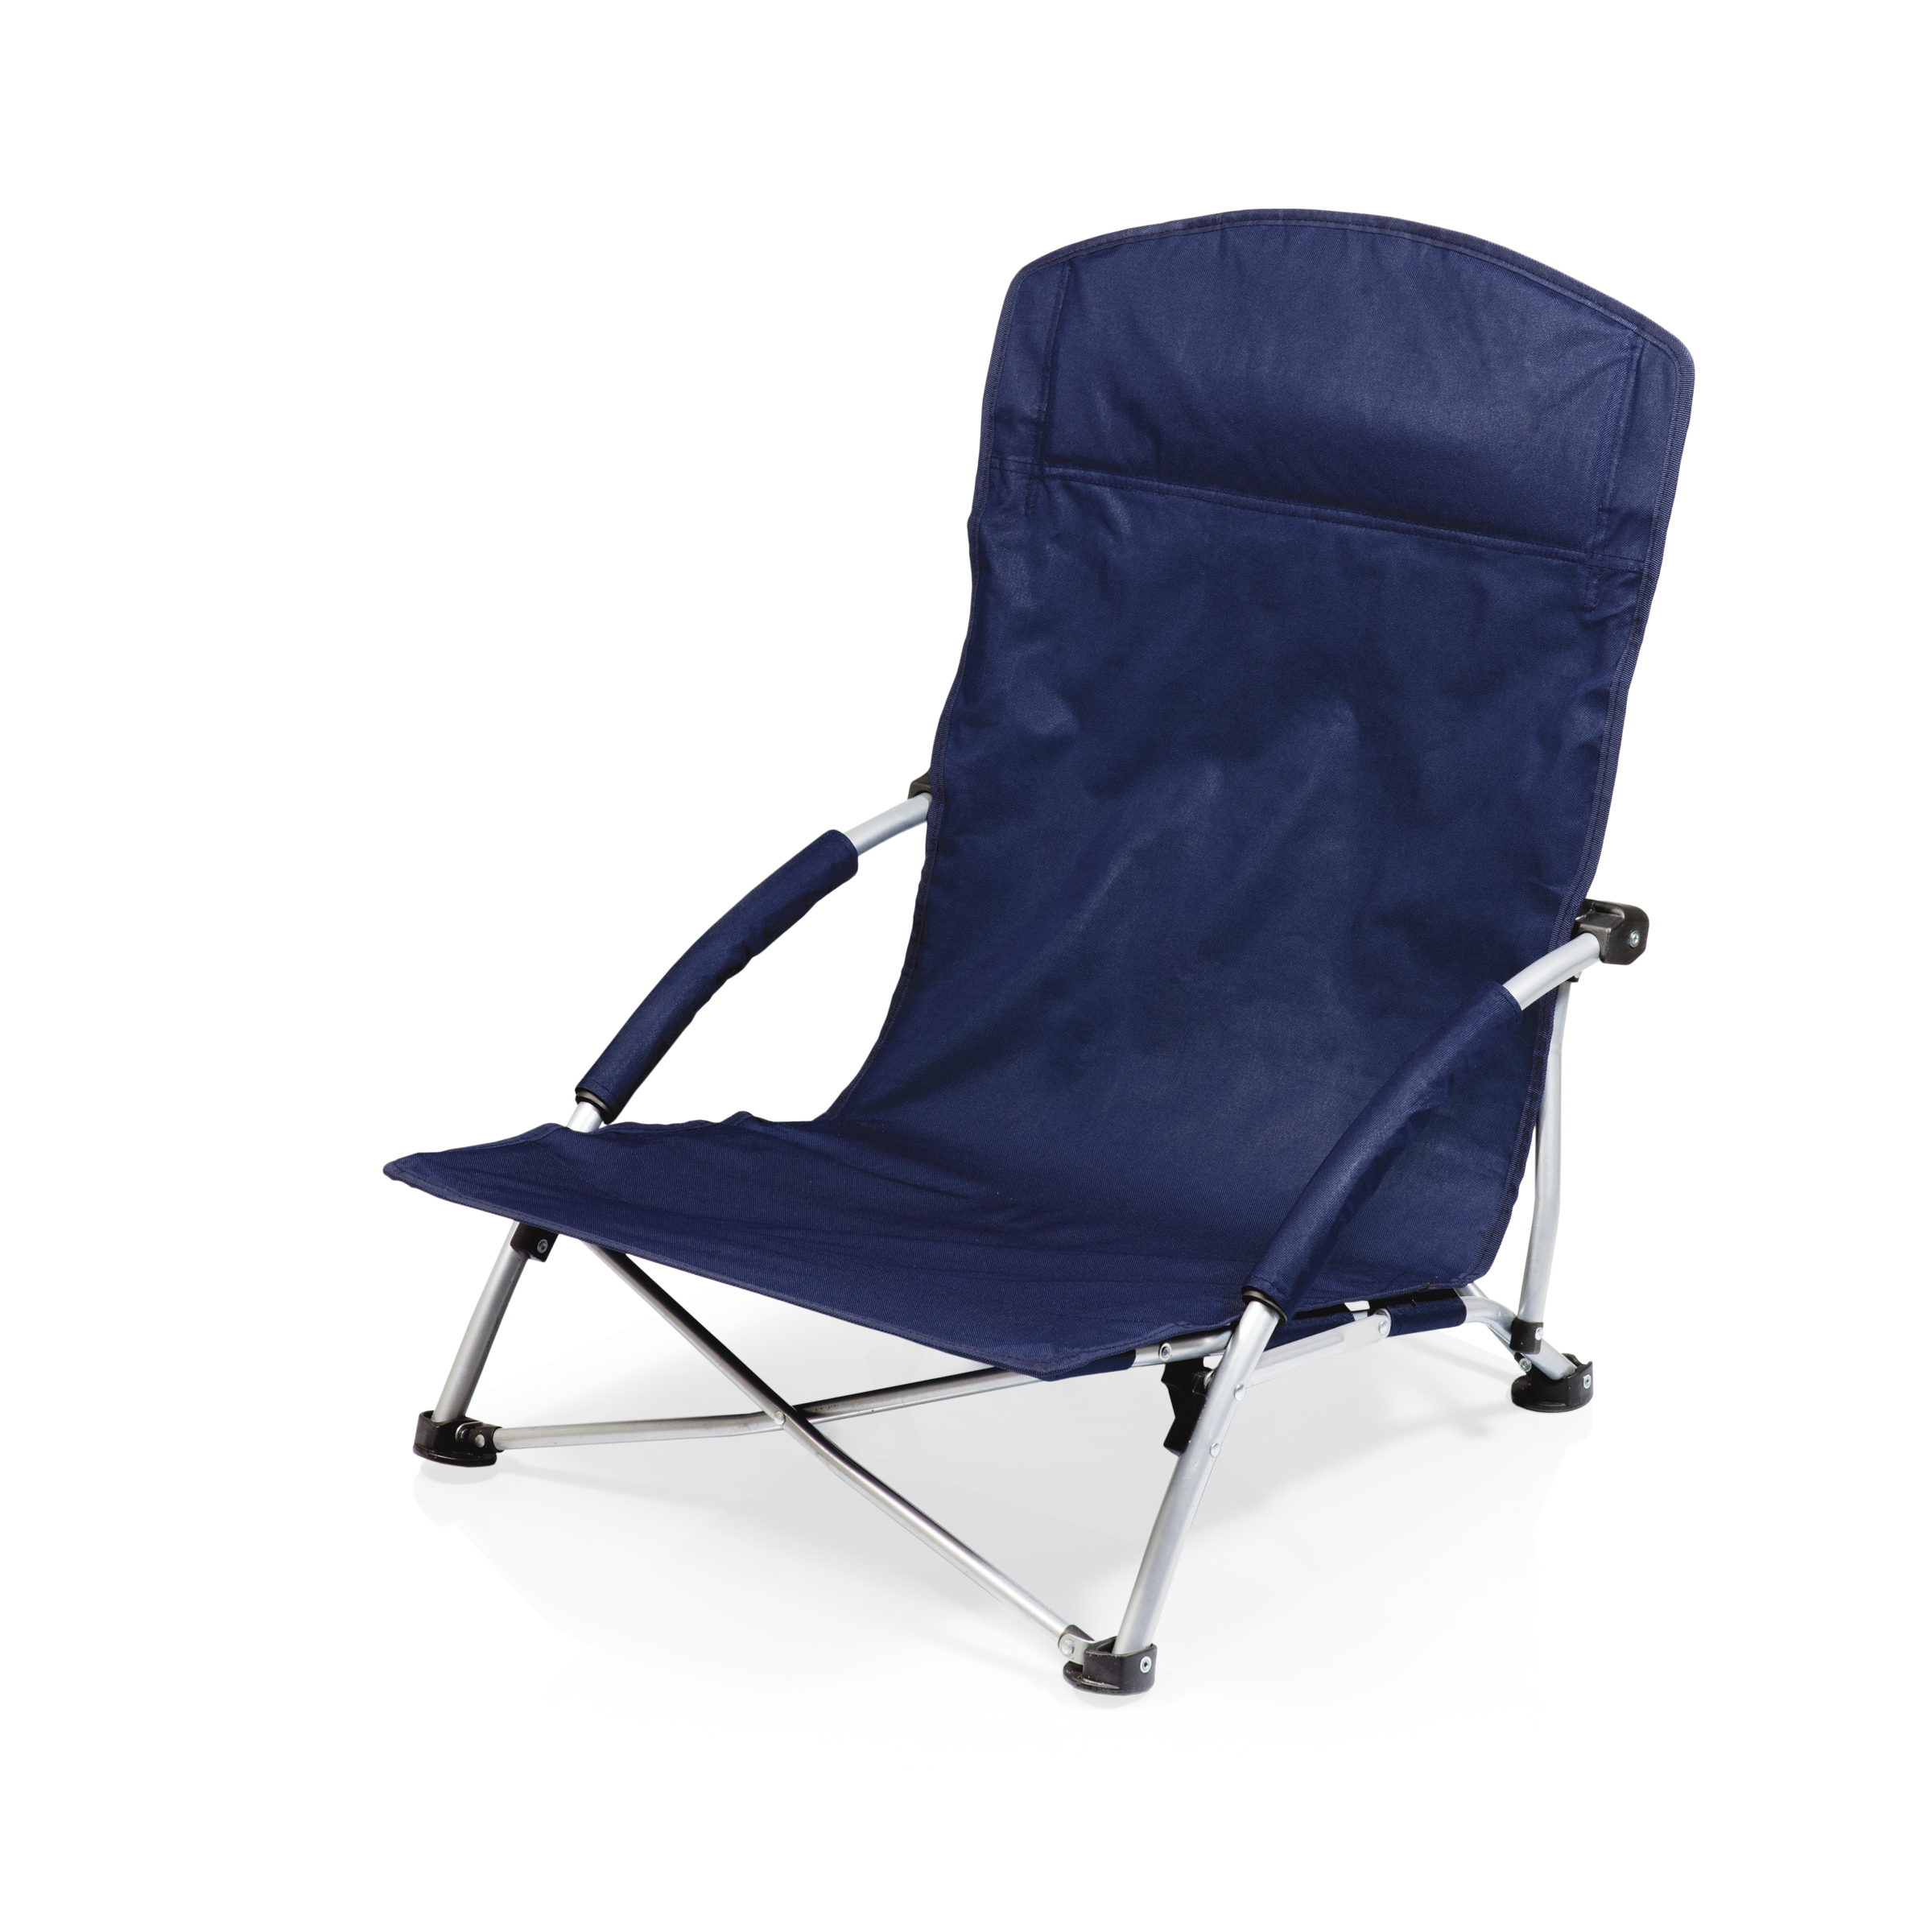 Tranquility Portable Beach Chair